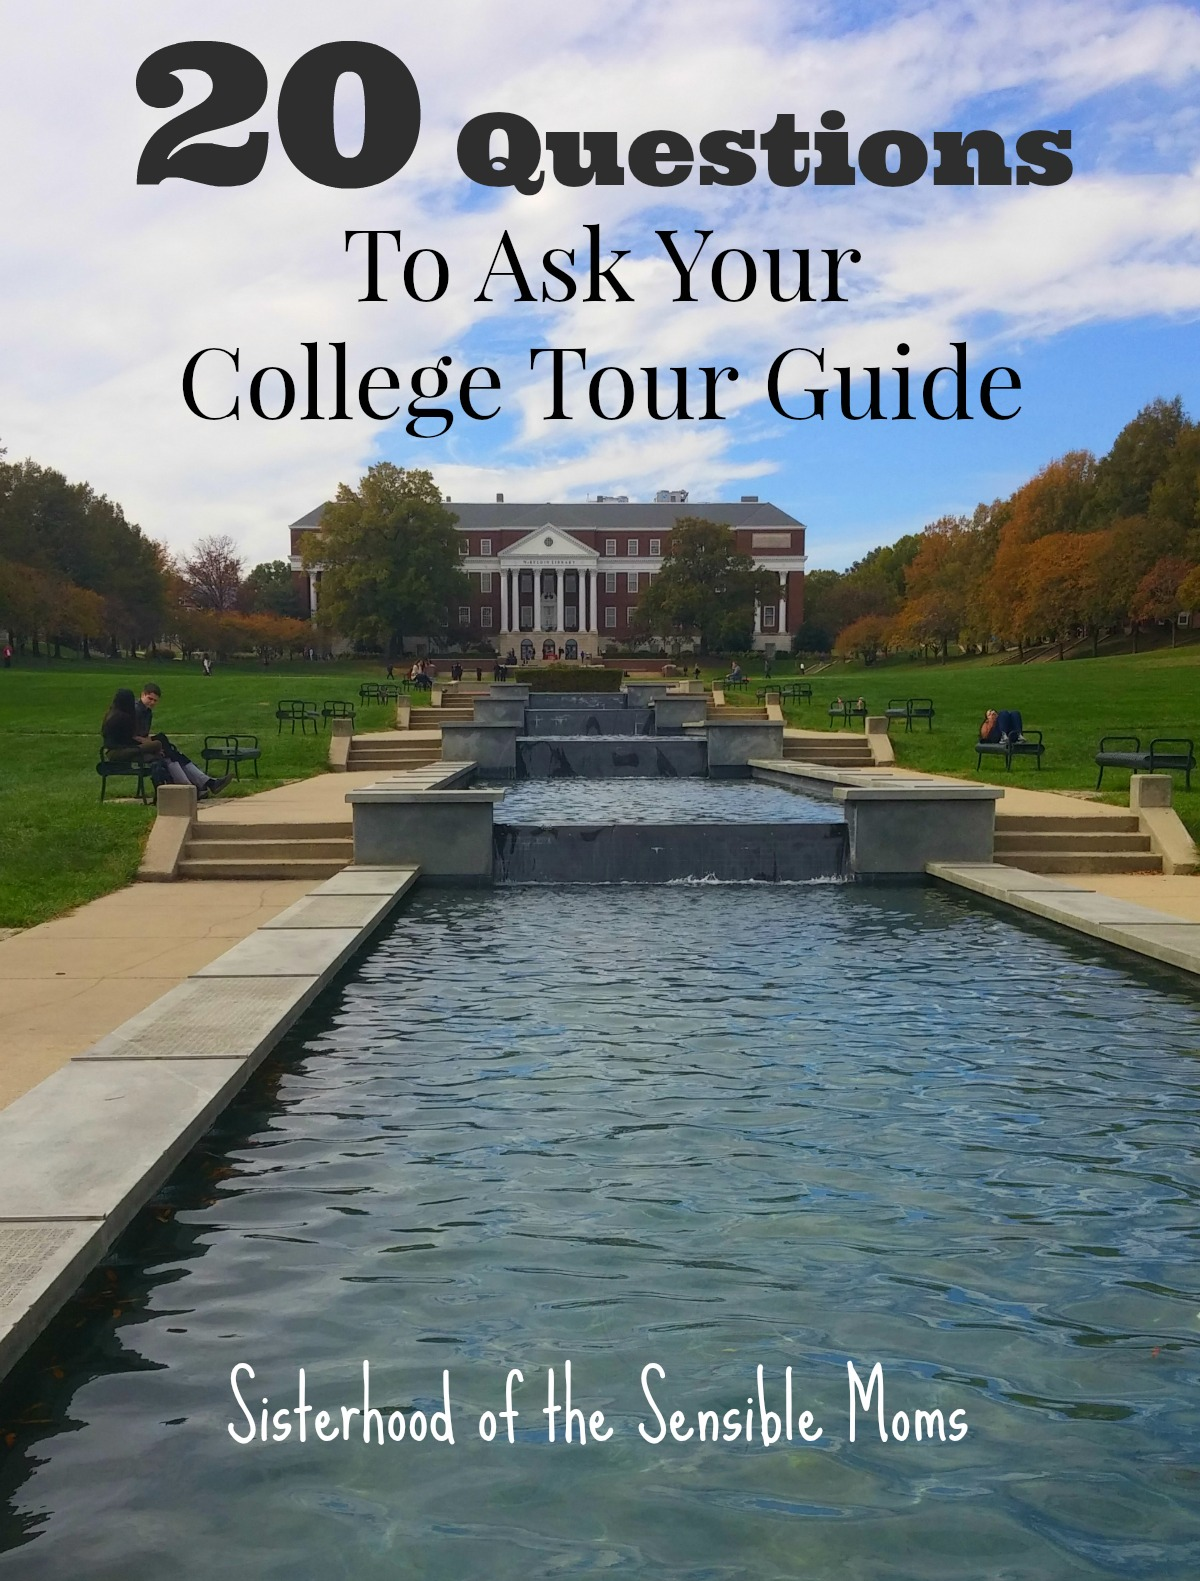 Get the most out of your next college tour with these 20 questions to ask your college tour guide. Great advice! | Parenting | Sisterhood of the Sensible Moms